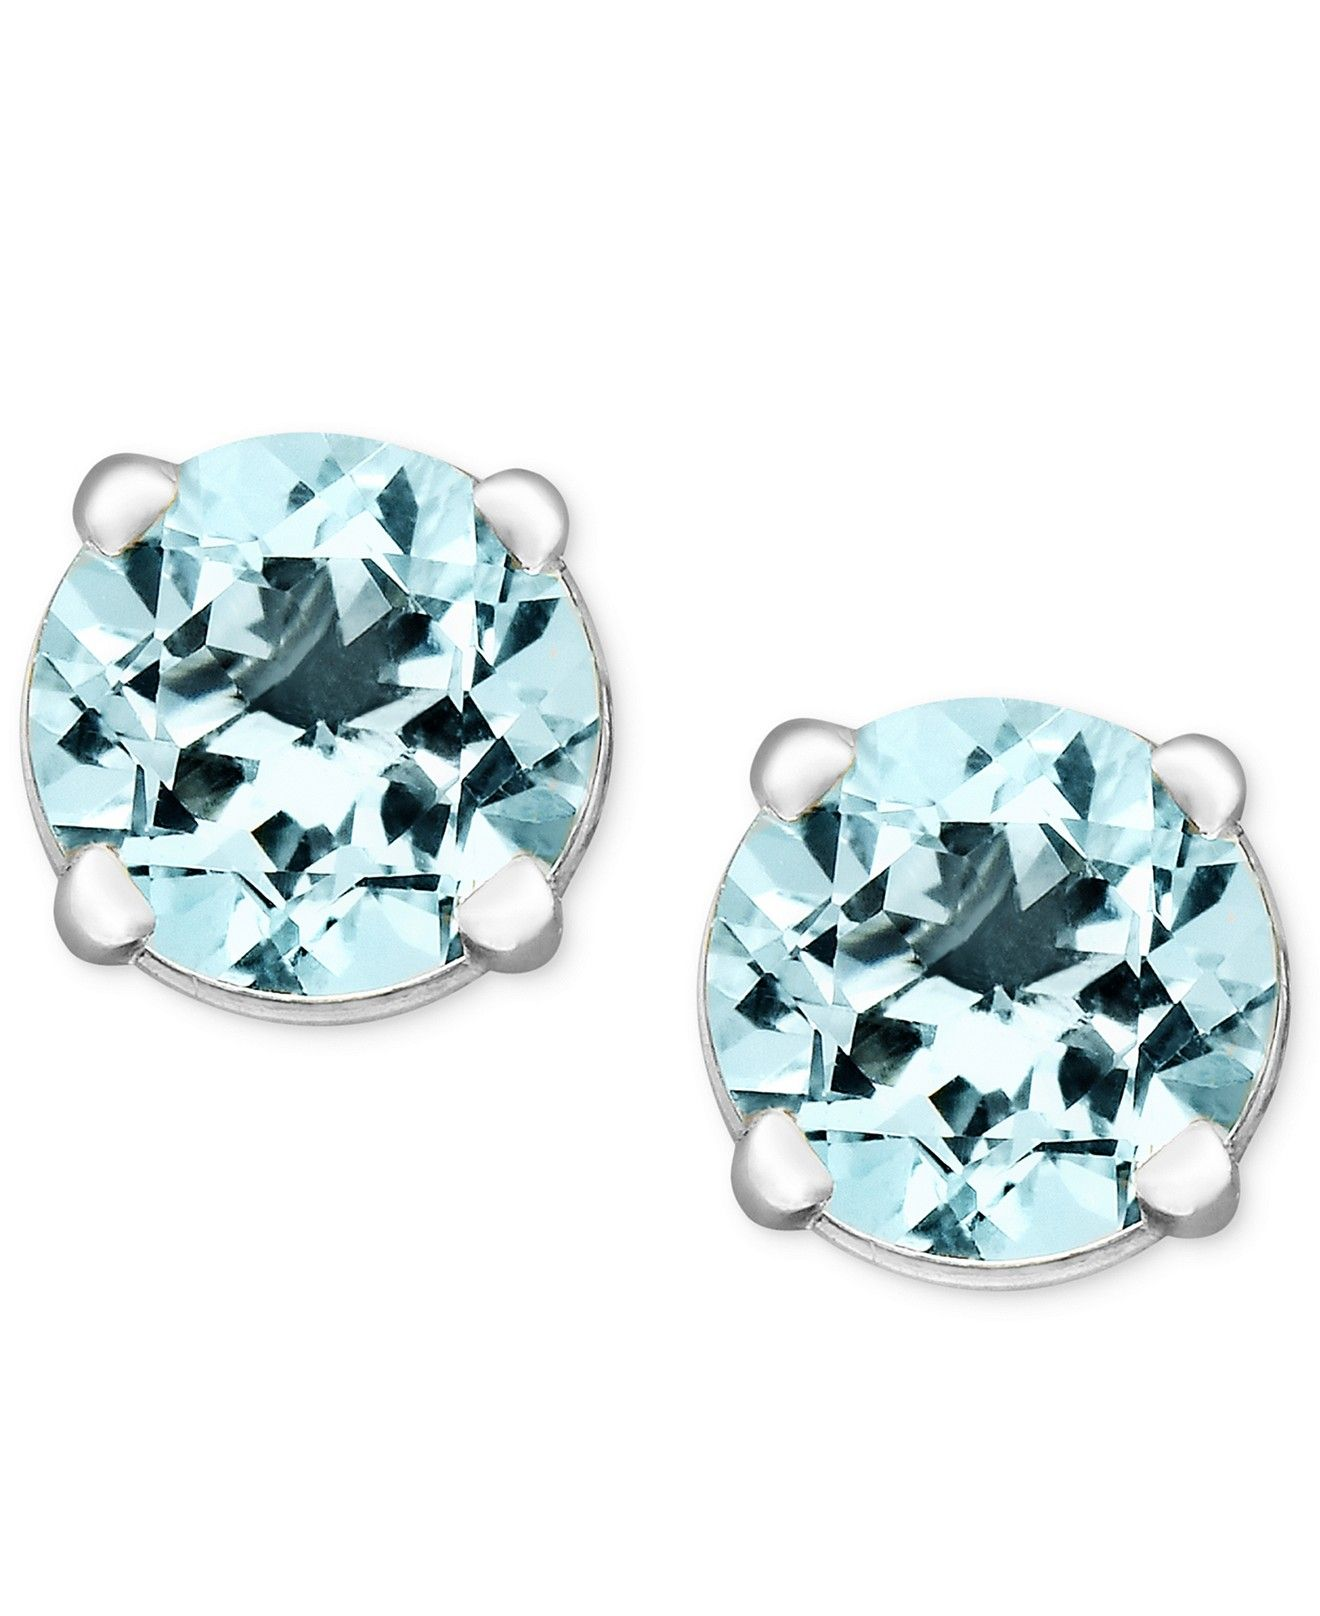 stud white marine gold aquamarine image jewellery from earrings oval gemstone aqua